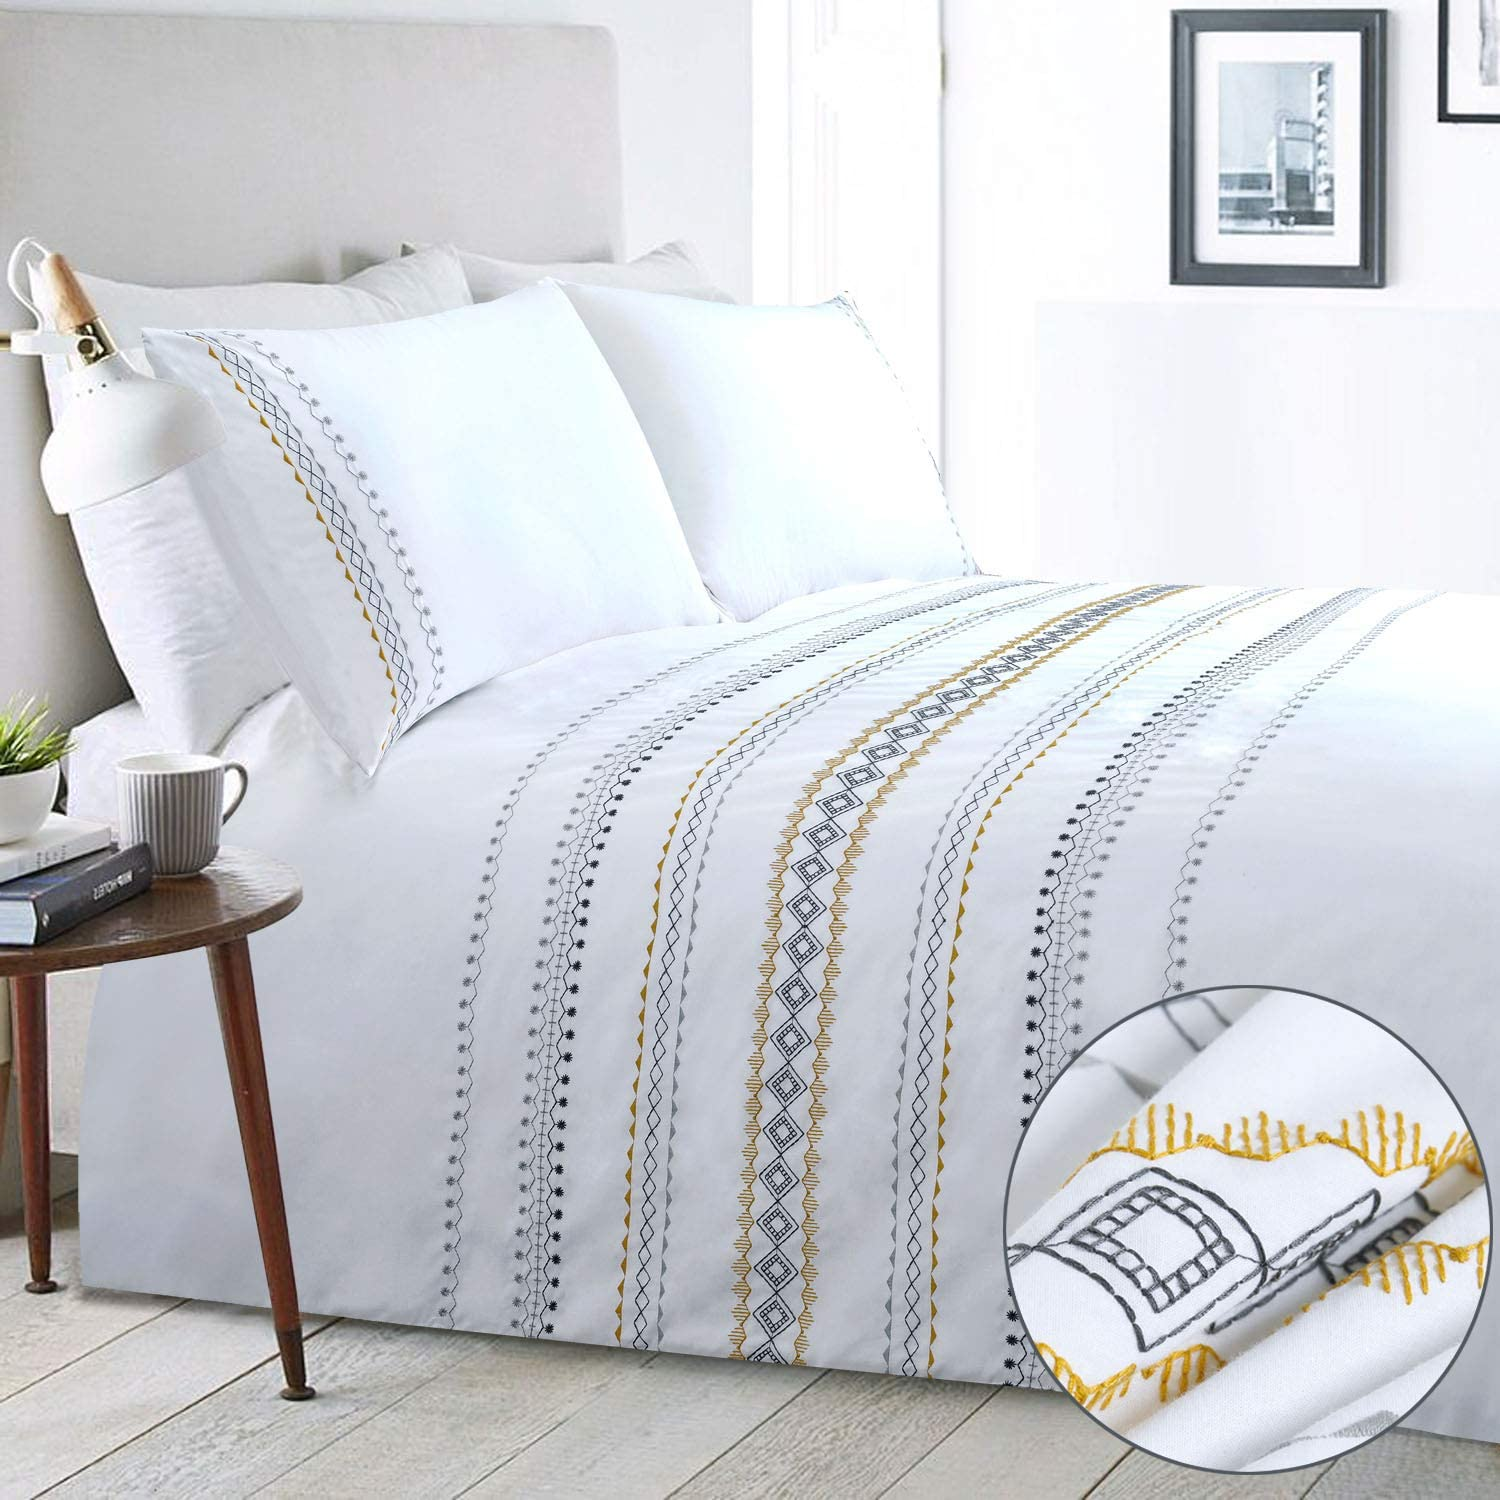 YINFUNG Boho Duvet Cover White Queen Aztec Geometric Bedding Set Cotton 3 Pieces Bohemian GEO 90x90 Textured Striped Moroccan Embroidered Mustard Patterned Gypsy Comforter Quilt Cover Zip Minimalist